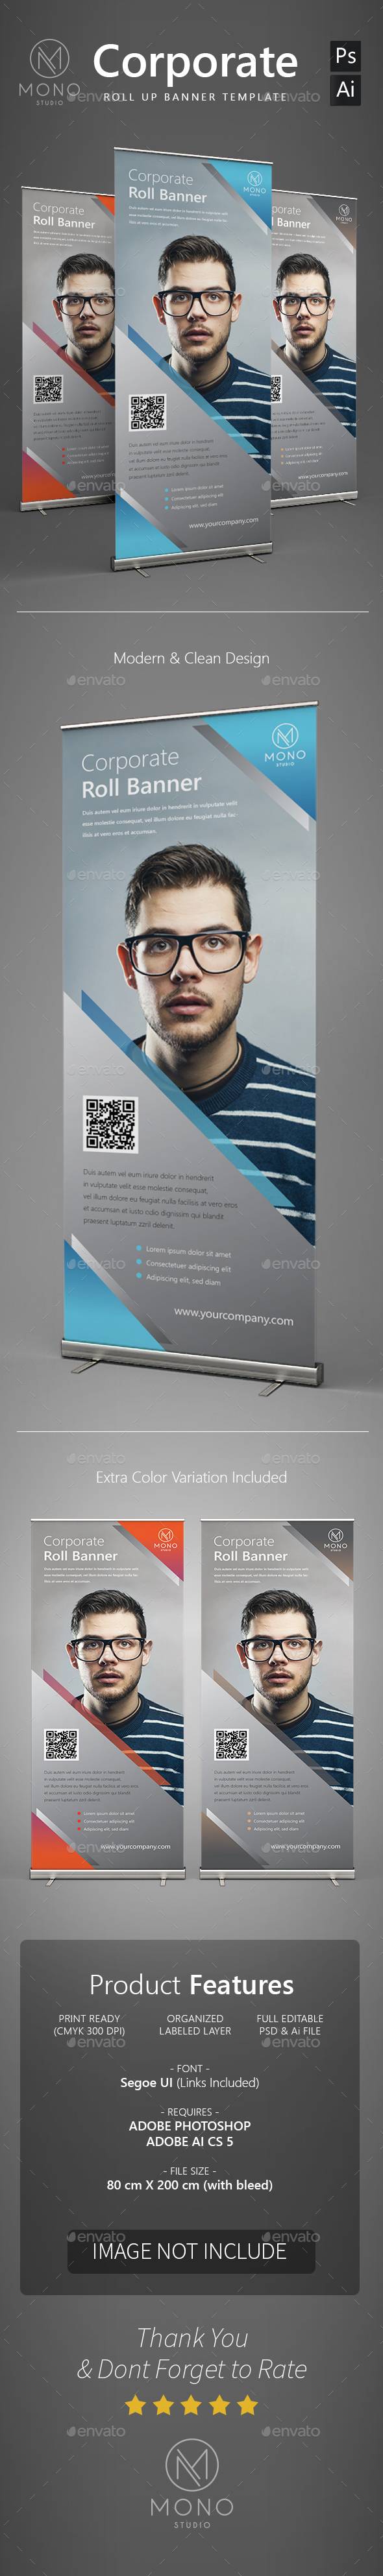 Corporate Roll Up Banner 1 - Signage Print Templates